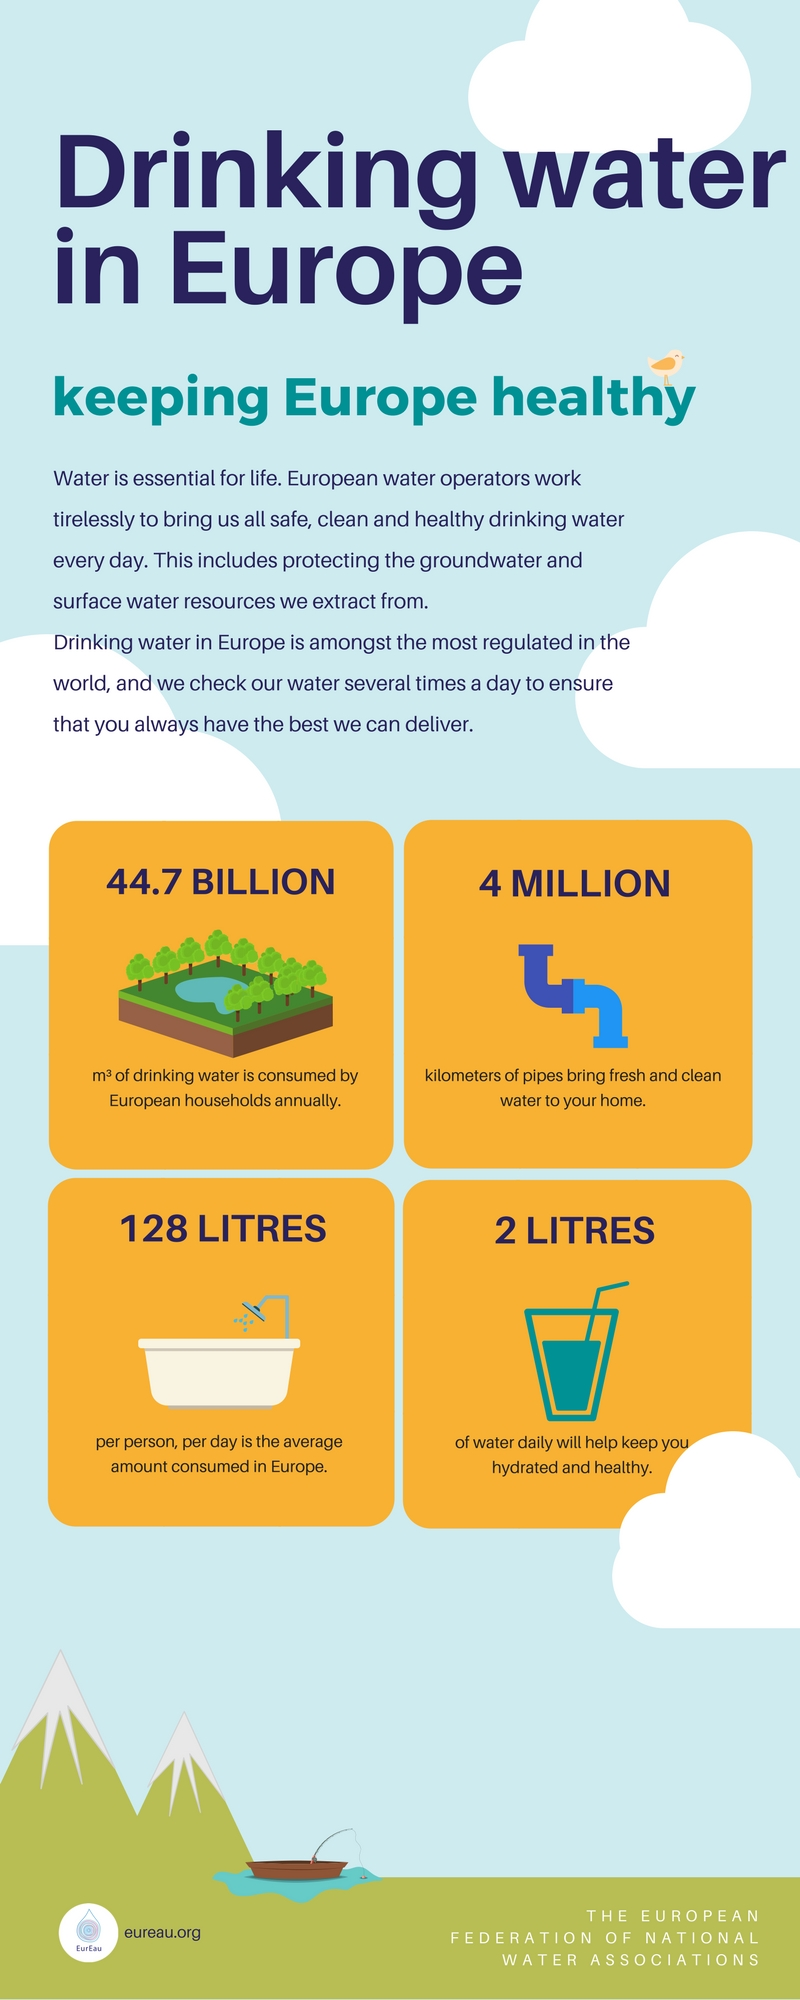 Infographic - drinking water in Europe - 2017 Statistical report on water services in Europe